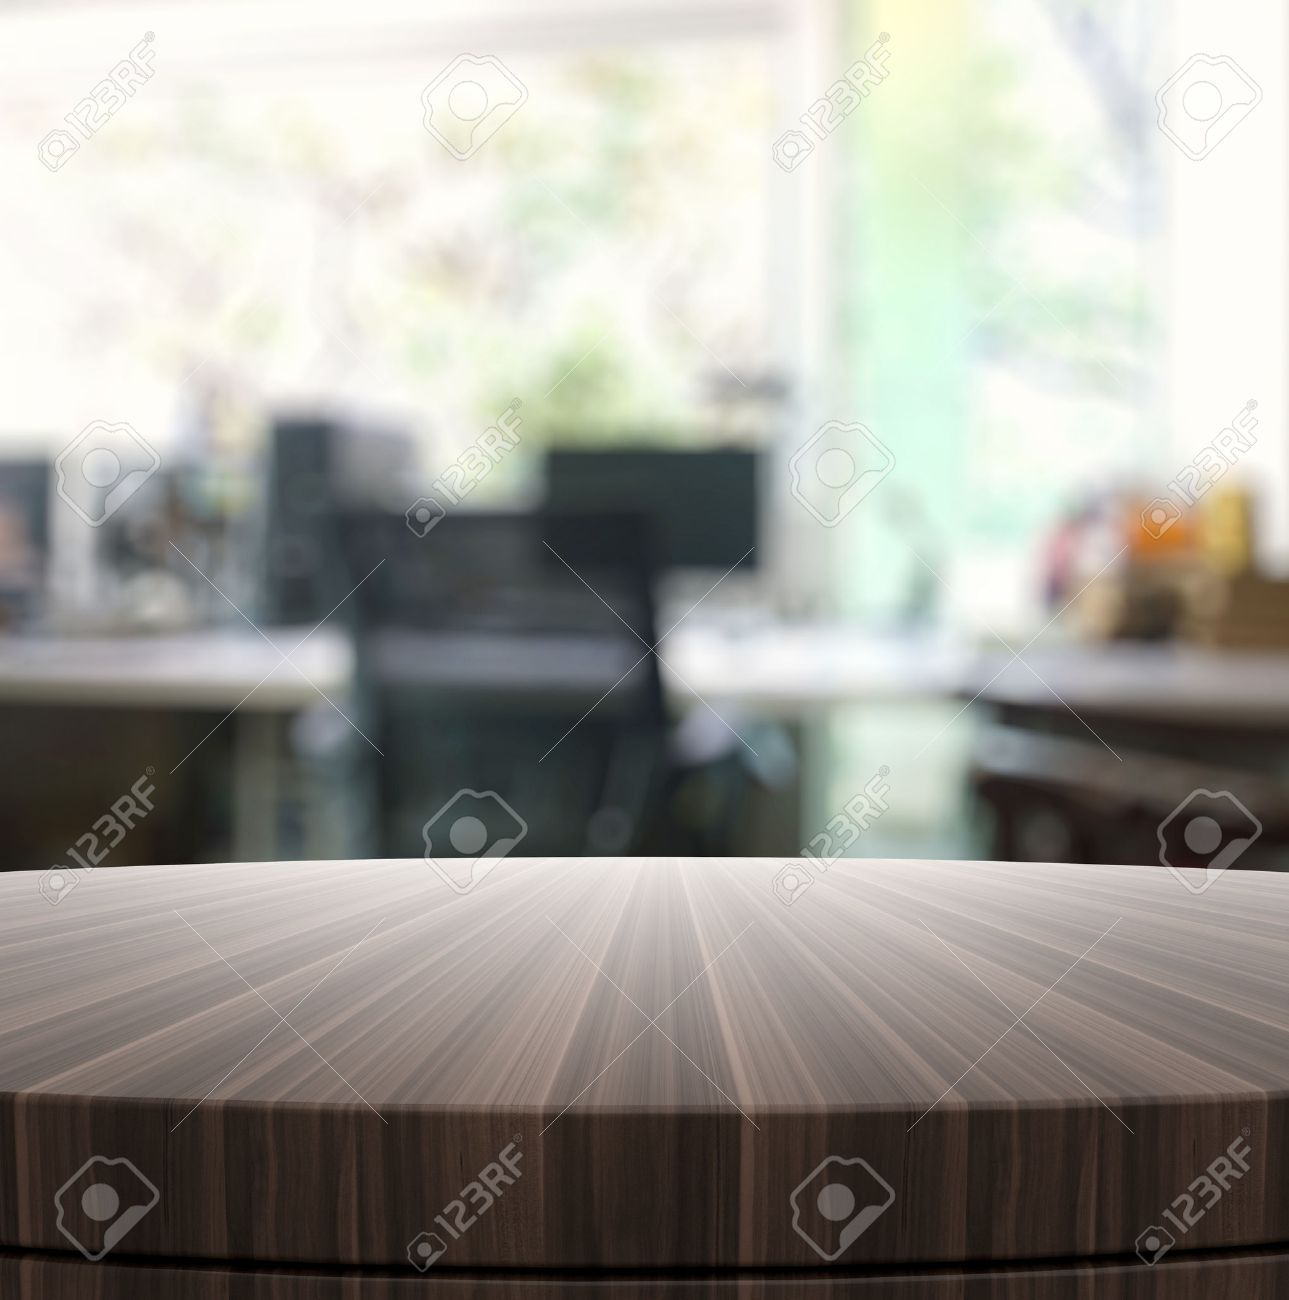 Empty wood table and blurred living room background stock photo - Empty Wooden Round Table And Blurred Background For Product Presentation Stock Photo 35589433